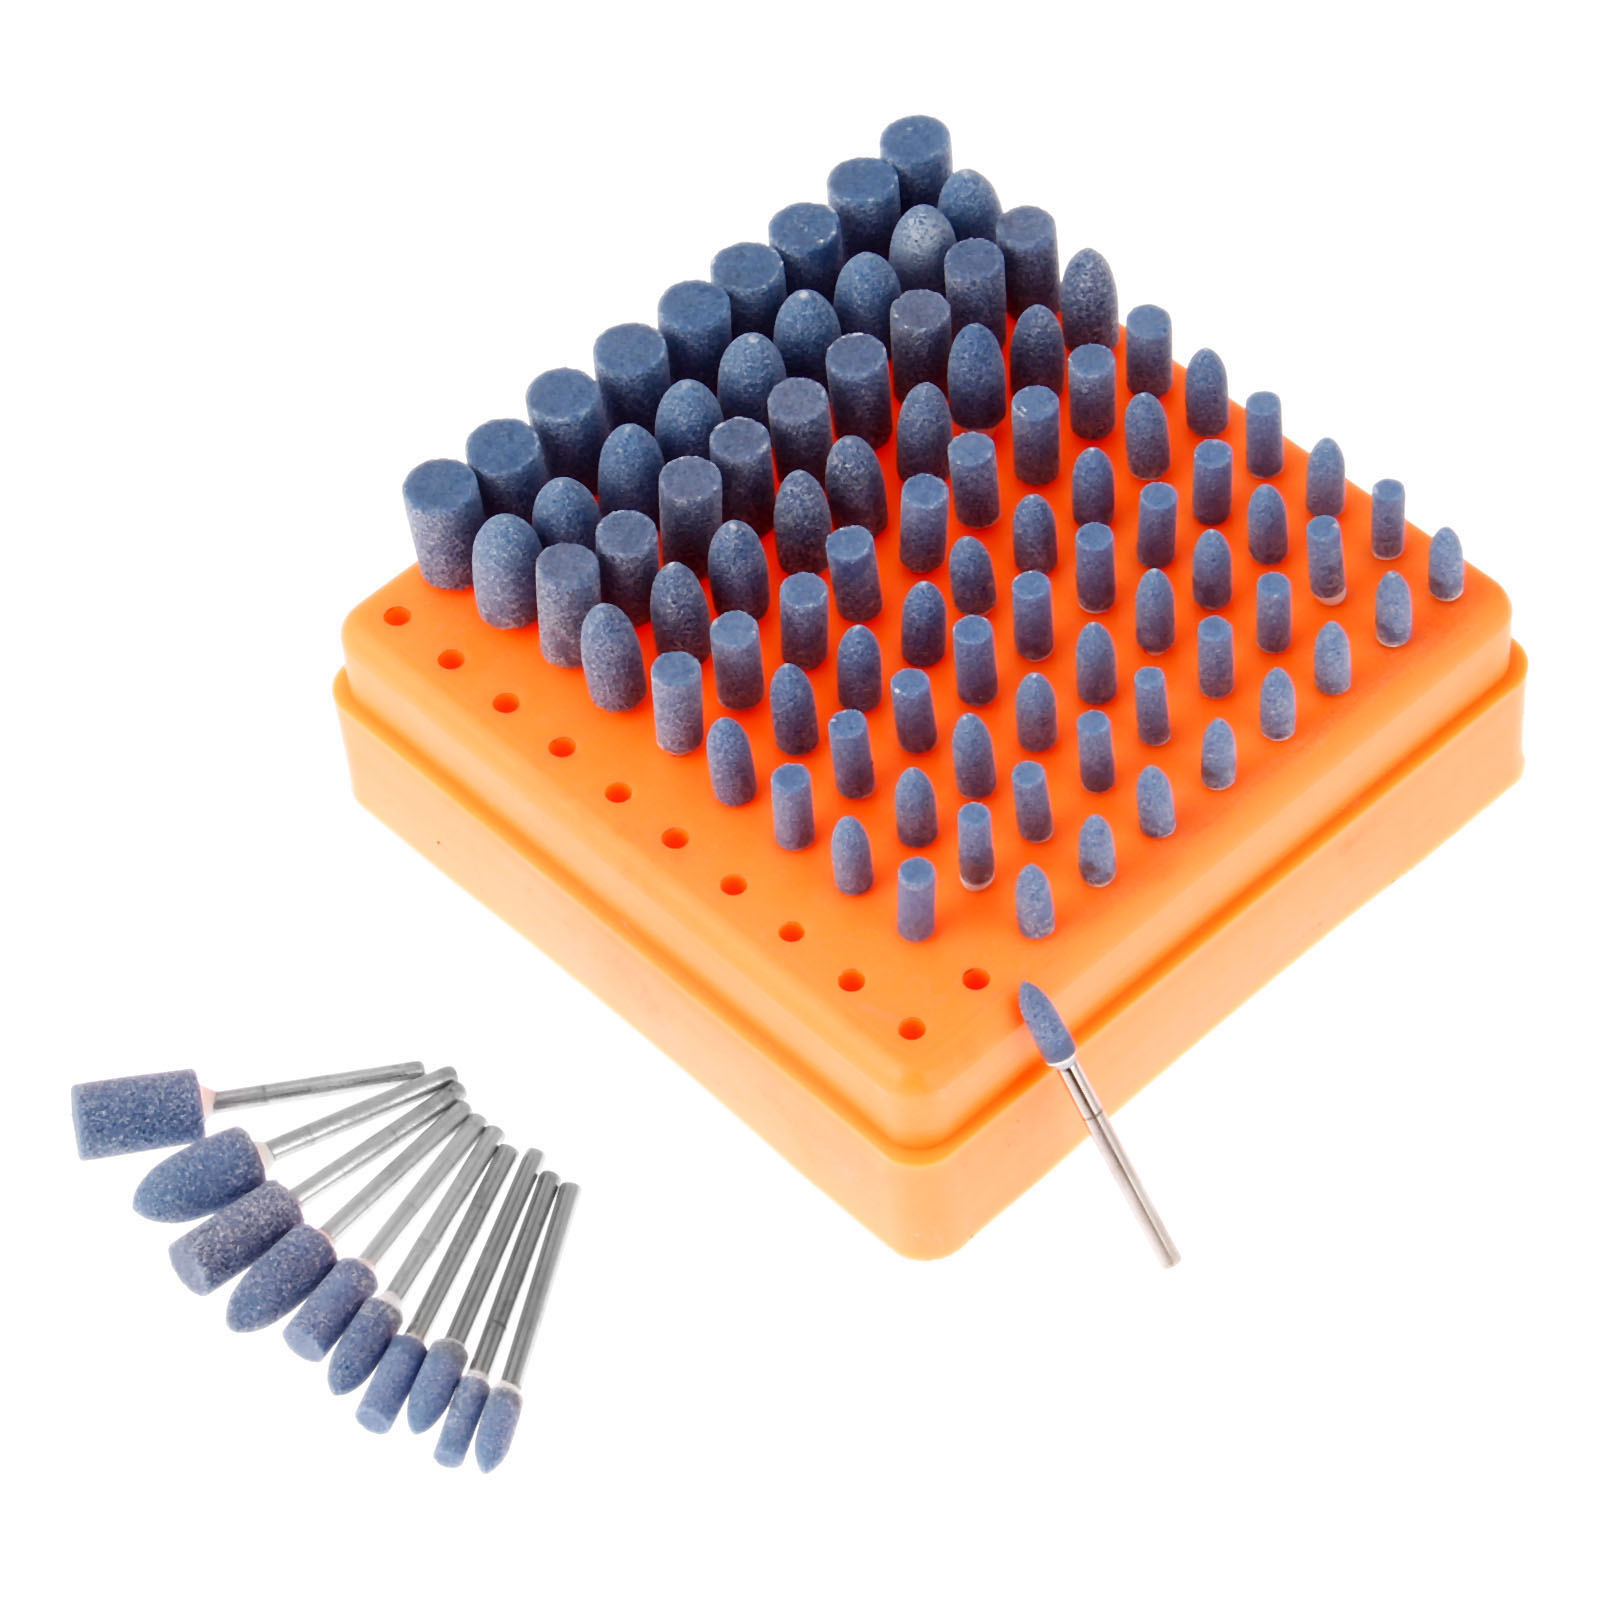 100pcs Ceramic Wheel Grinding Head Polishing Drilling Accessories Kit for Grinder Rotary Tool 3mm